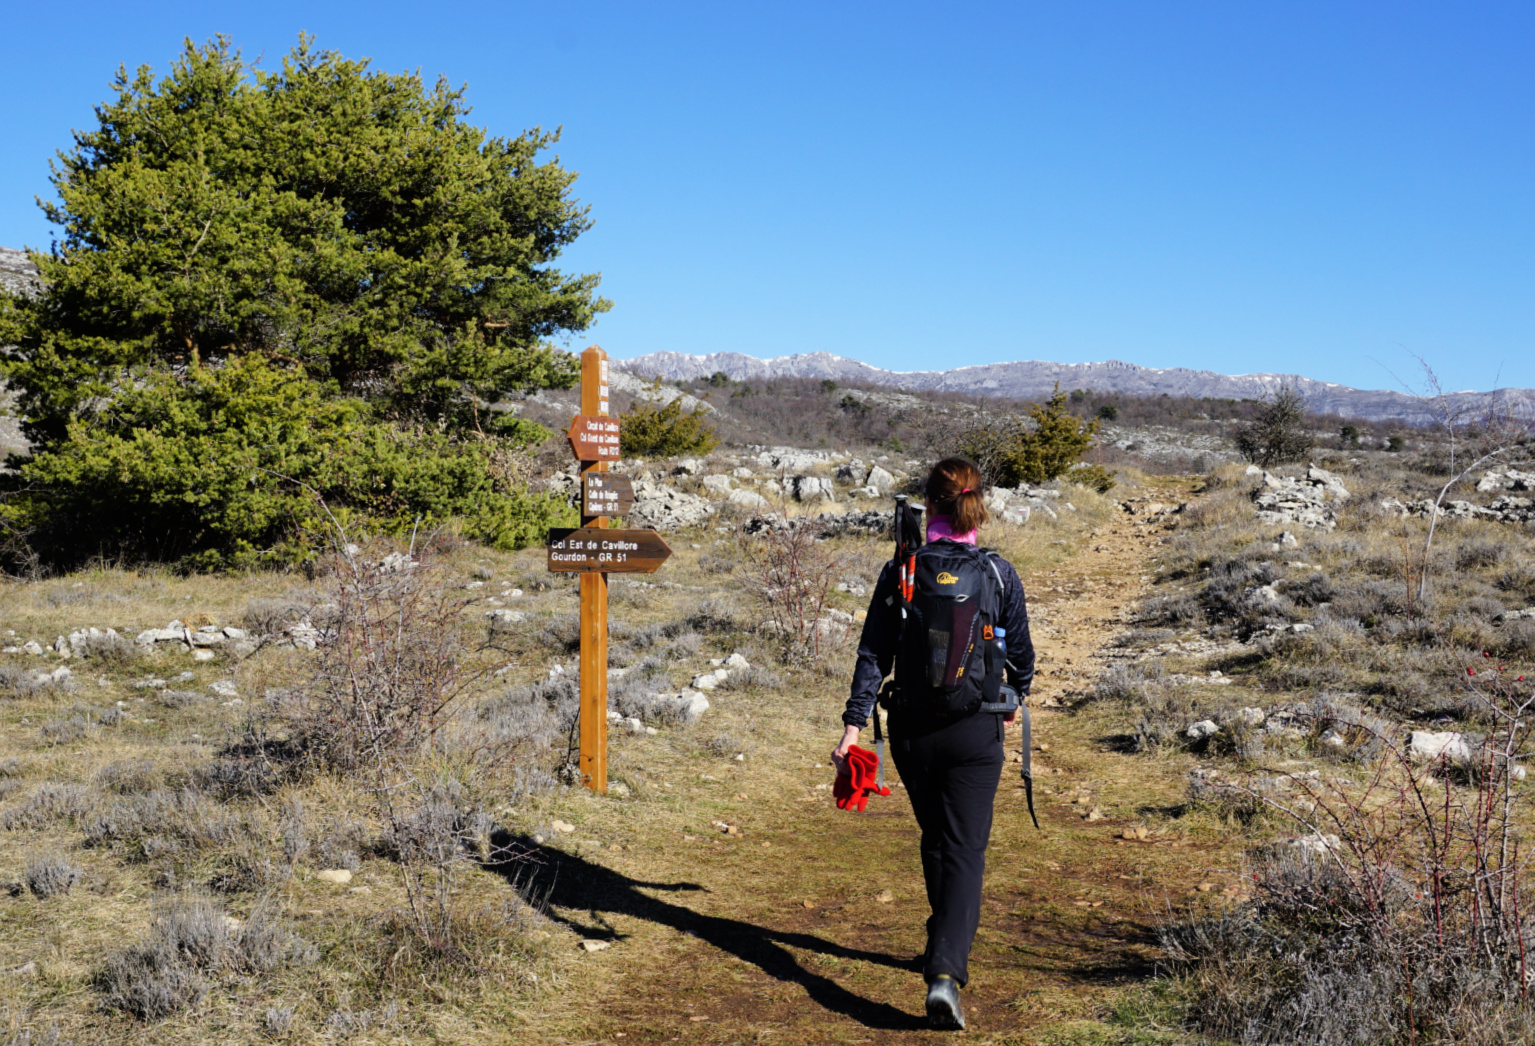 Joining the GR51 trail